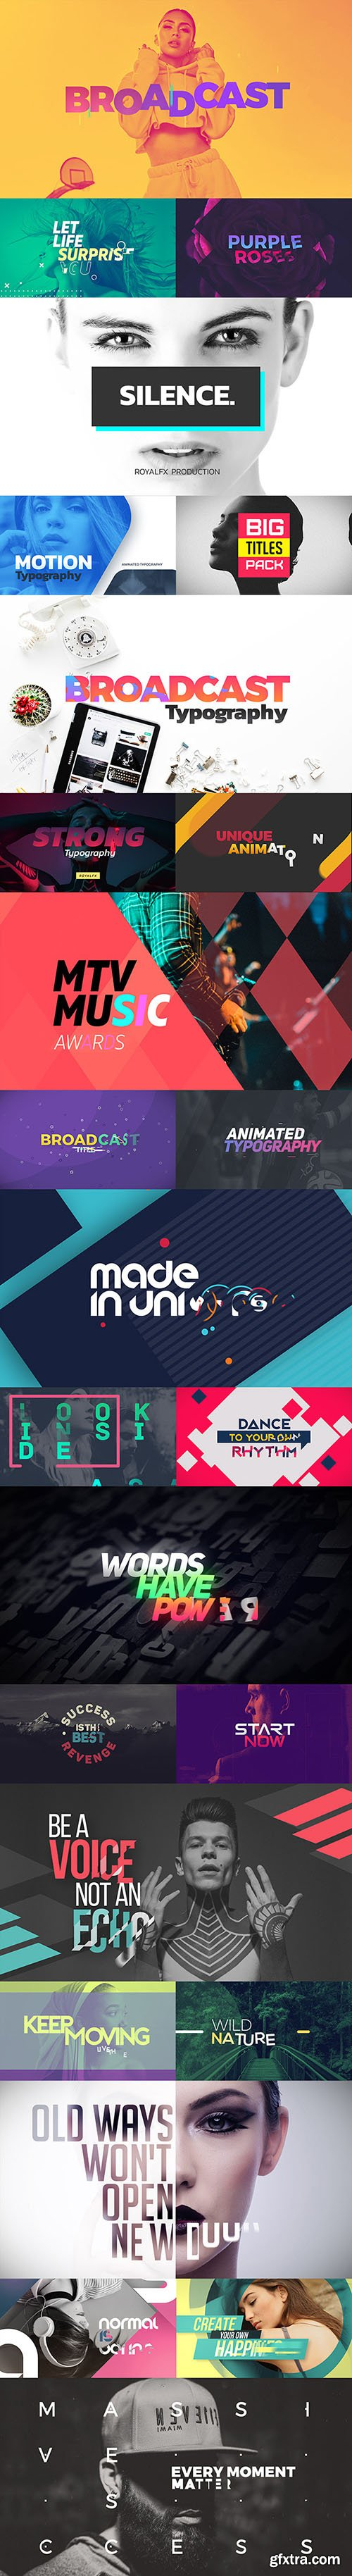 Videohive TypeX - Text Animation Tool | Broadcast Pack: Modern Colorful Typography Titles V1.5.51 20233979